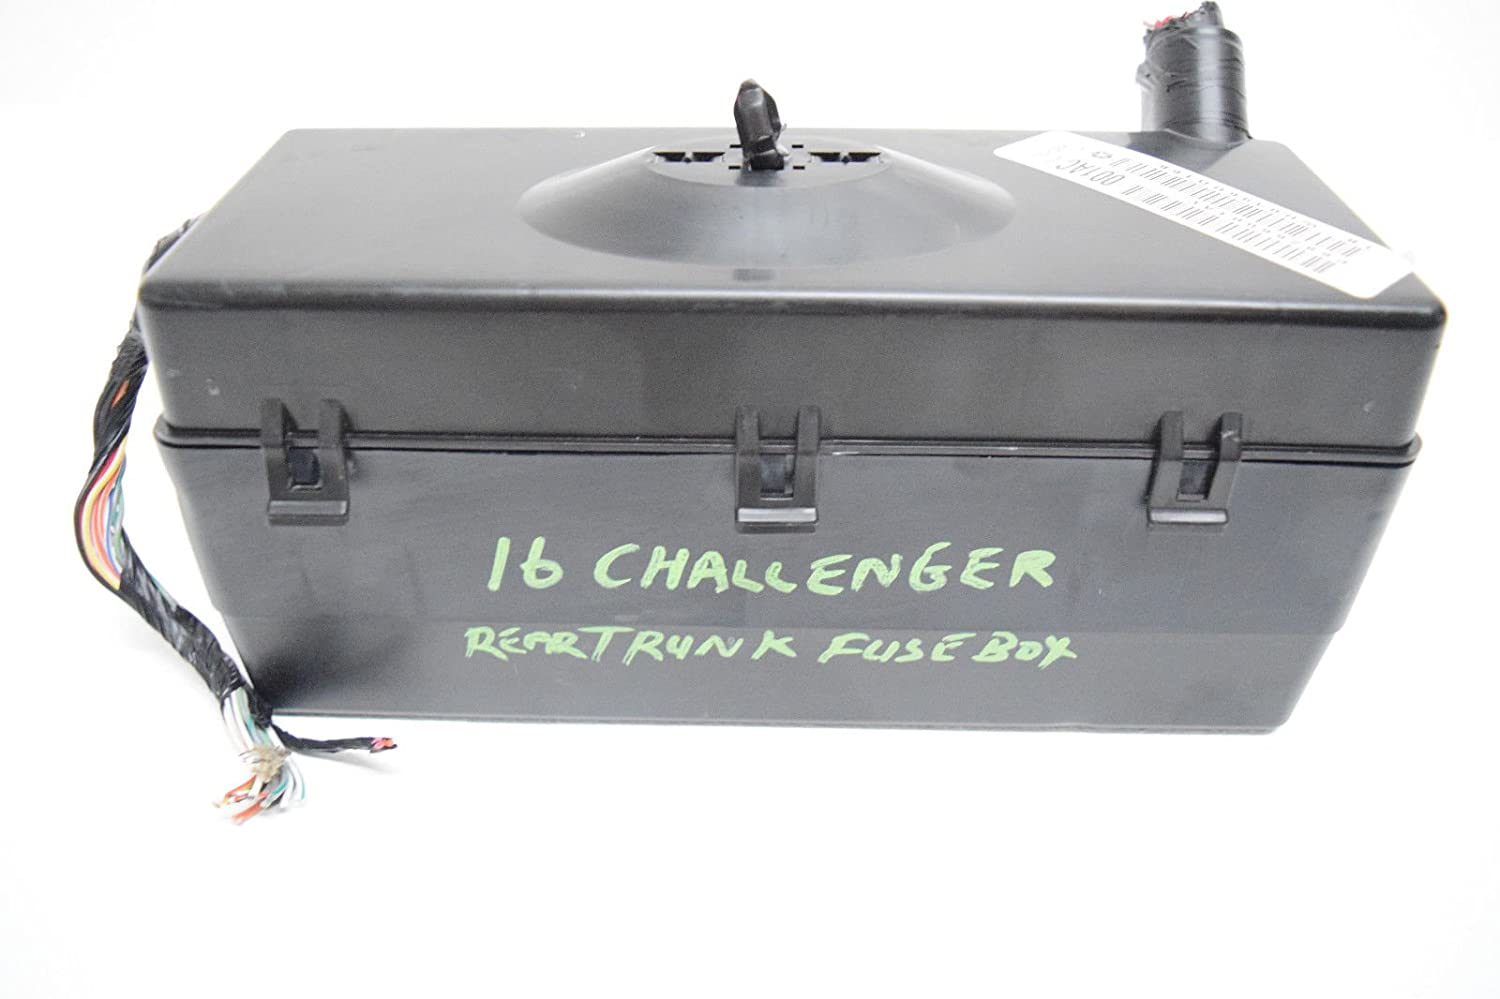 2010 Challenger Fuse Box Wiring Library 2012 Amazoncom 15 16 Dodge Rear Trunk Fusebox Oem Car